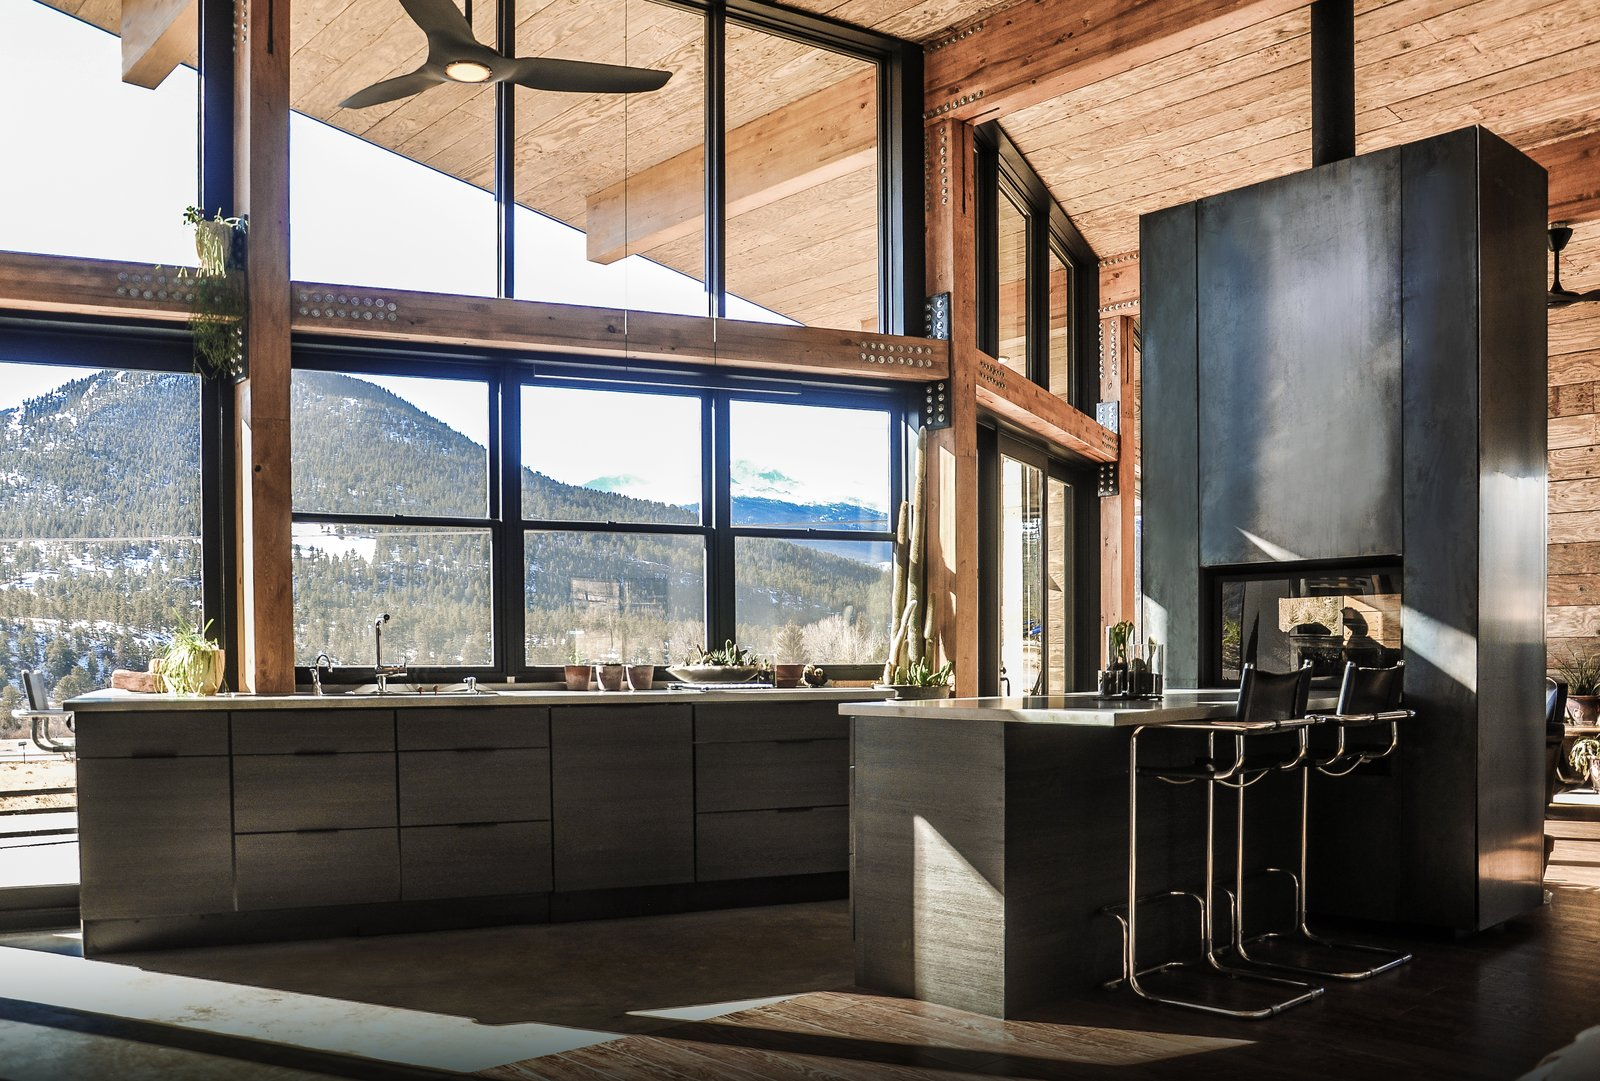 Kitchen, Refrigerator, Microwave, Cooktops, Wood, Dishwasher, Ceiling, Metal, Dark Hardwood, Concrete, Concrete, Range, Wall Oven, Pendant, Concrete, Accent, and Drop In The warm industrial kitchen celebrates views of Rocky Mountain National Park beyond. A see-through, steel fireplace becomes a glowing beacon that warms the kitchen and living room at the heart of the home.   Best Kitchen Concrete Cooktops Ceiling Refrigerator Dishwasher Pendant Wall Oven Photos from Estes Park Residence